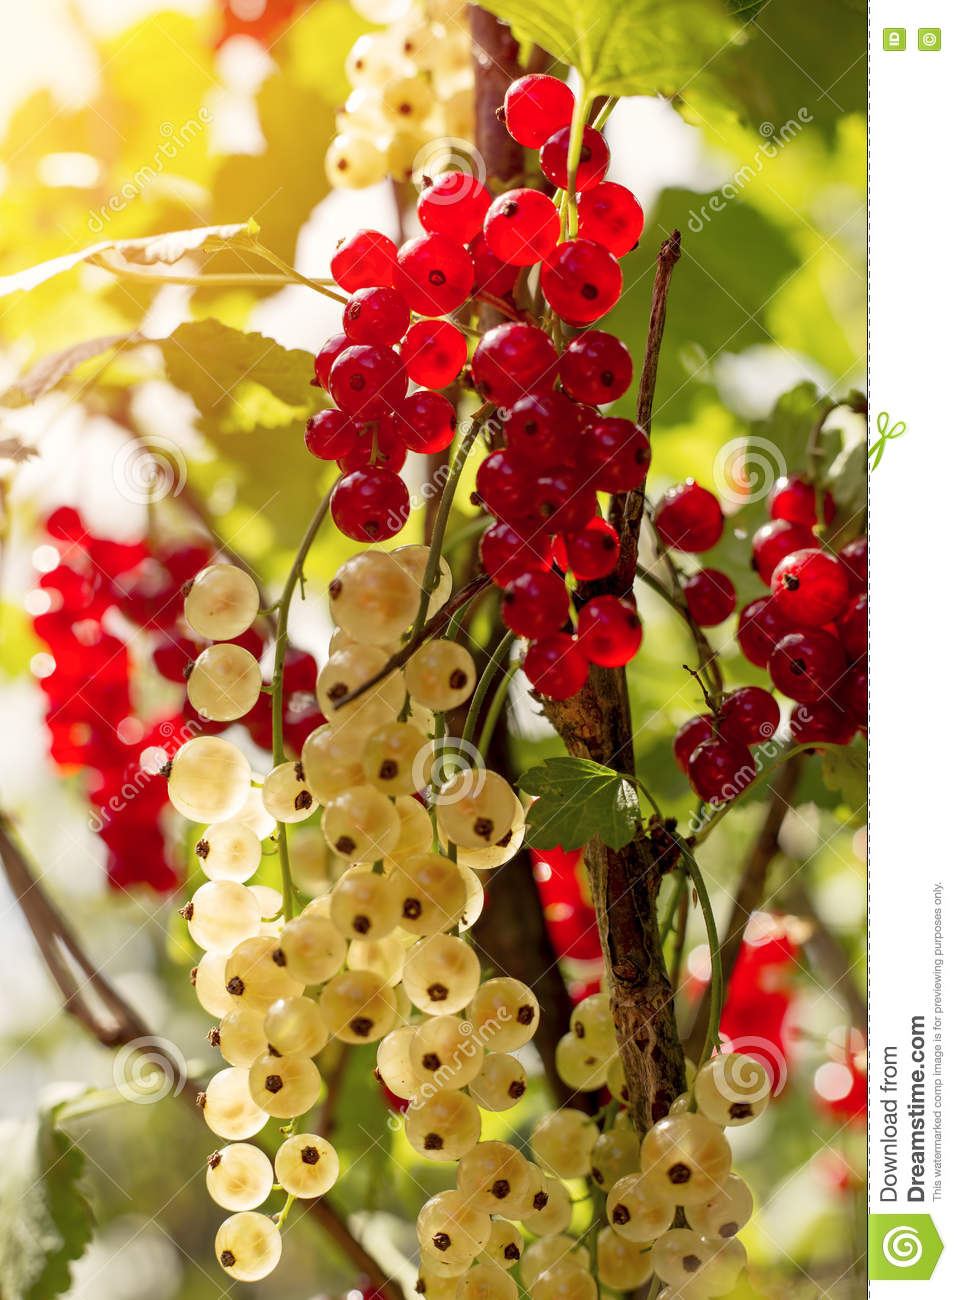 Detail on a bunch of red and white currant on a branch with green leaves